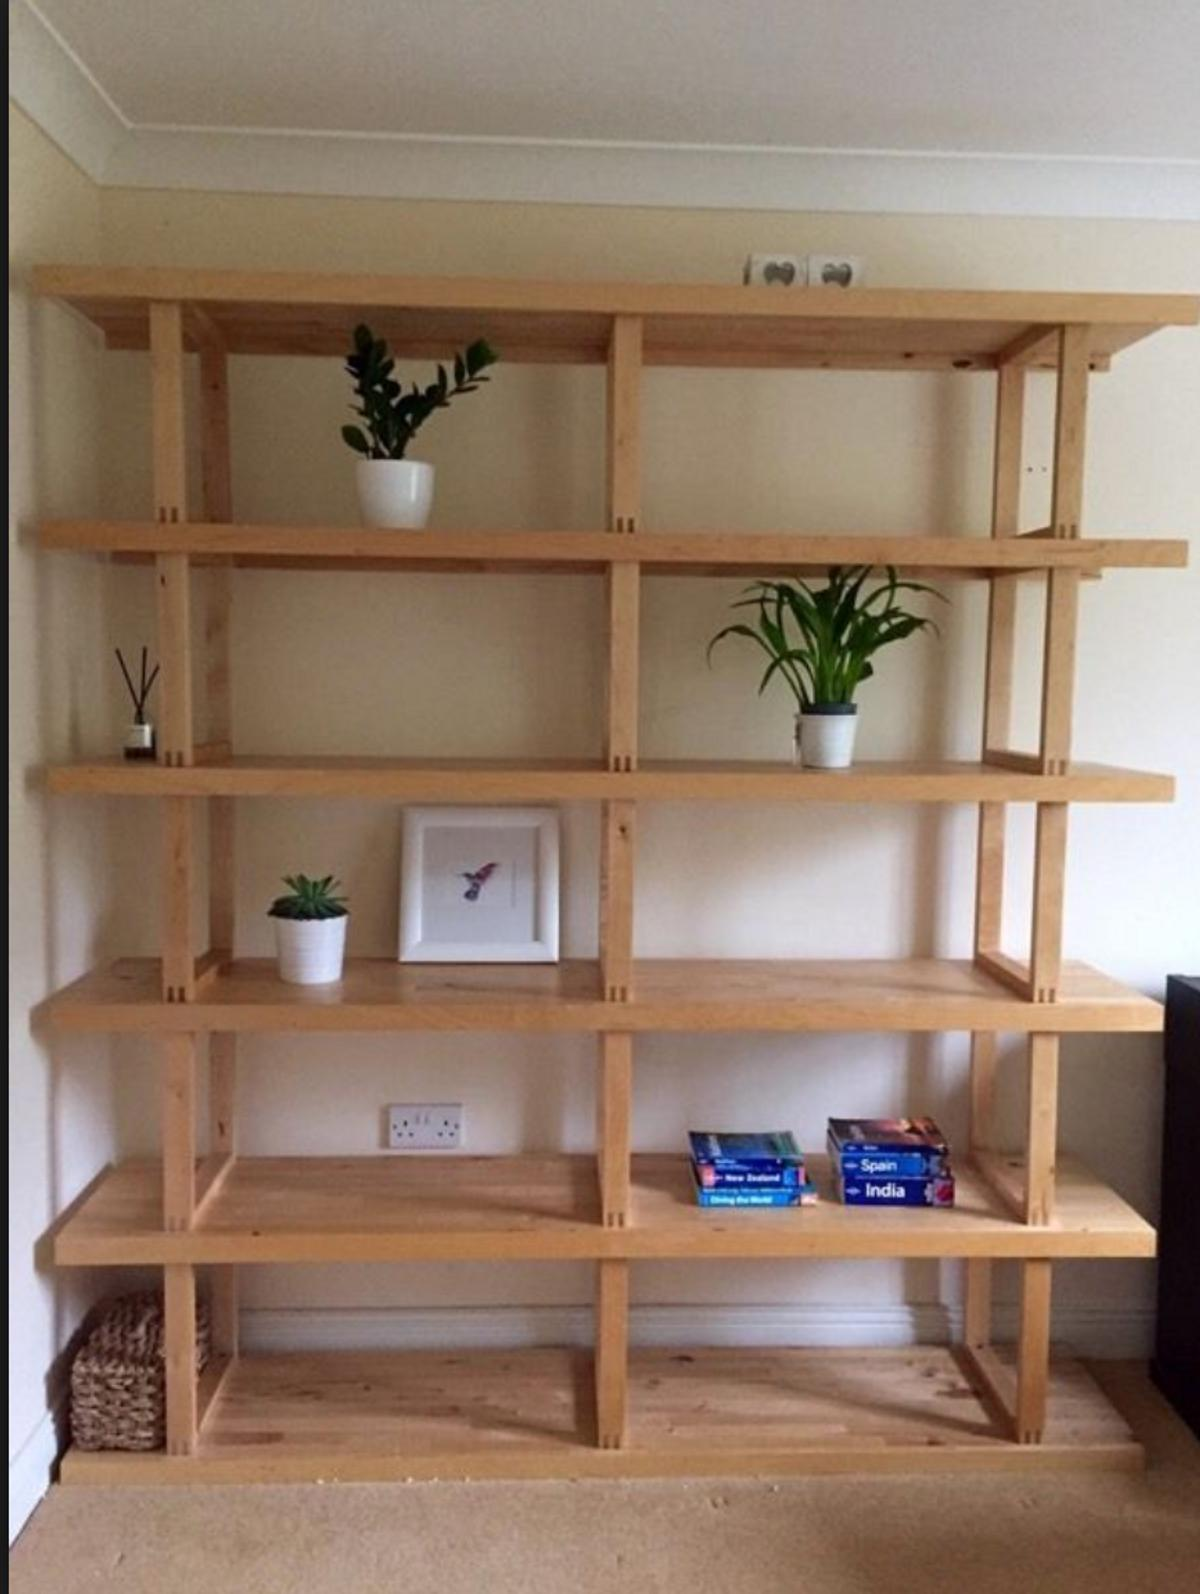 Ikea Regal Gorm Ikea Norrebo Shelf Shelving Ideas